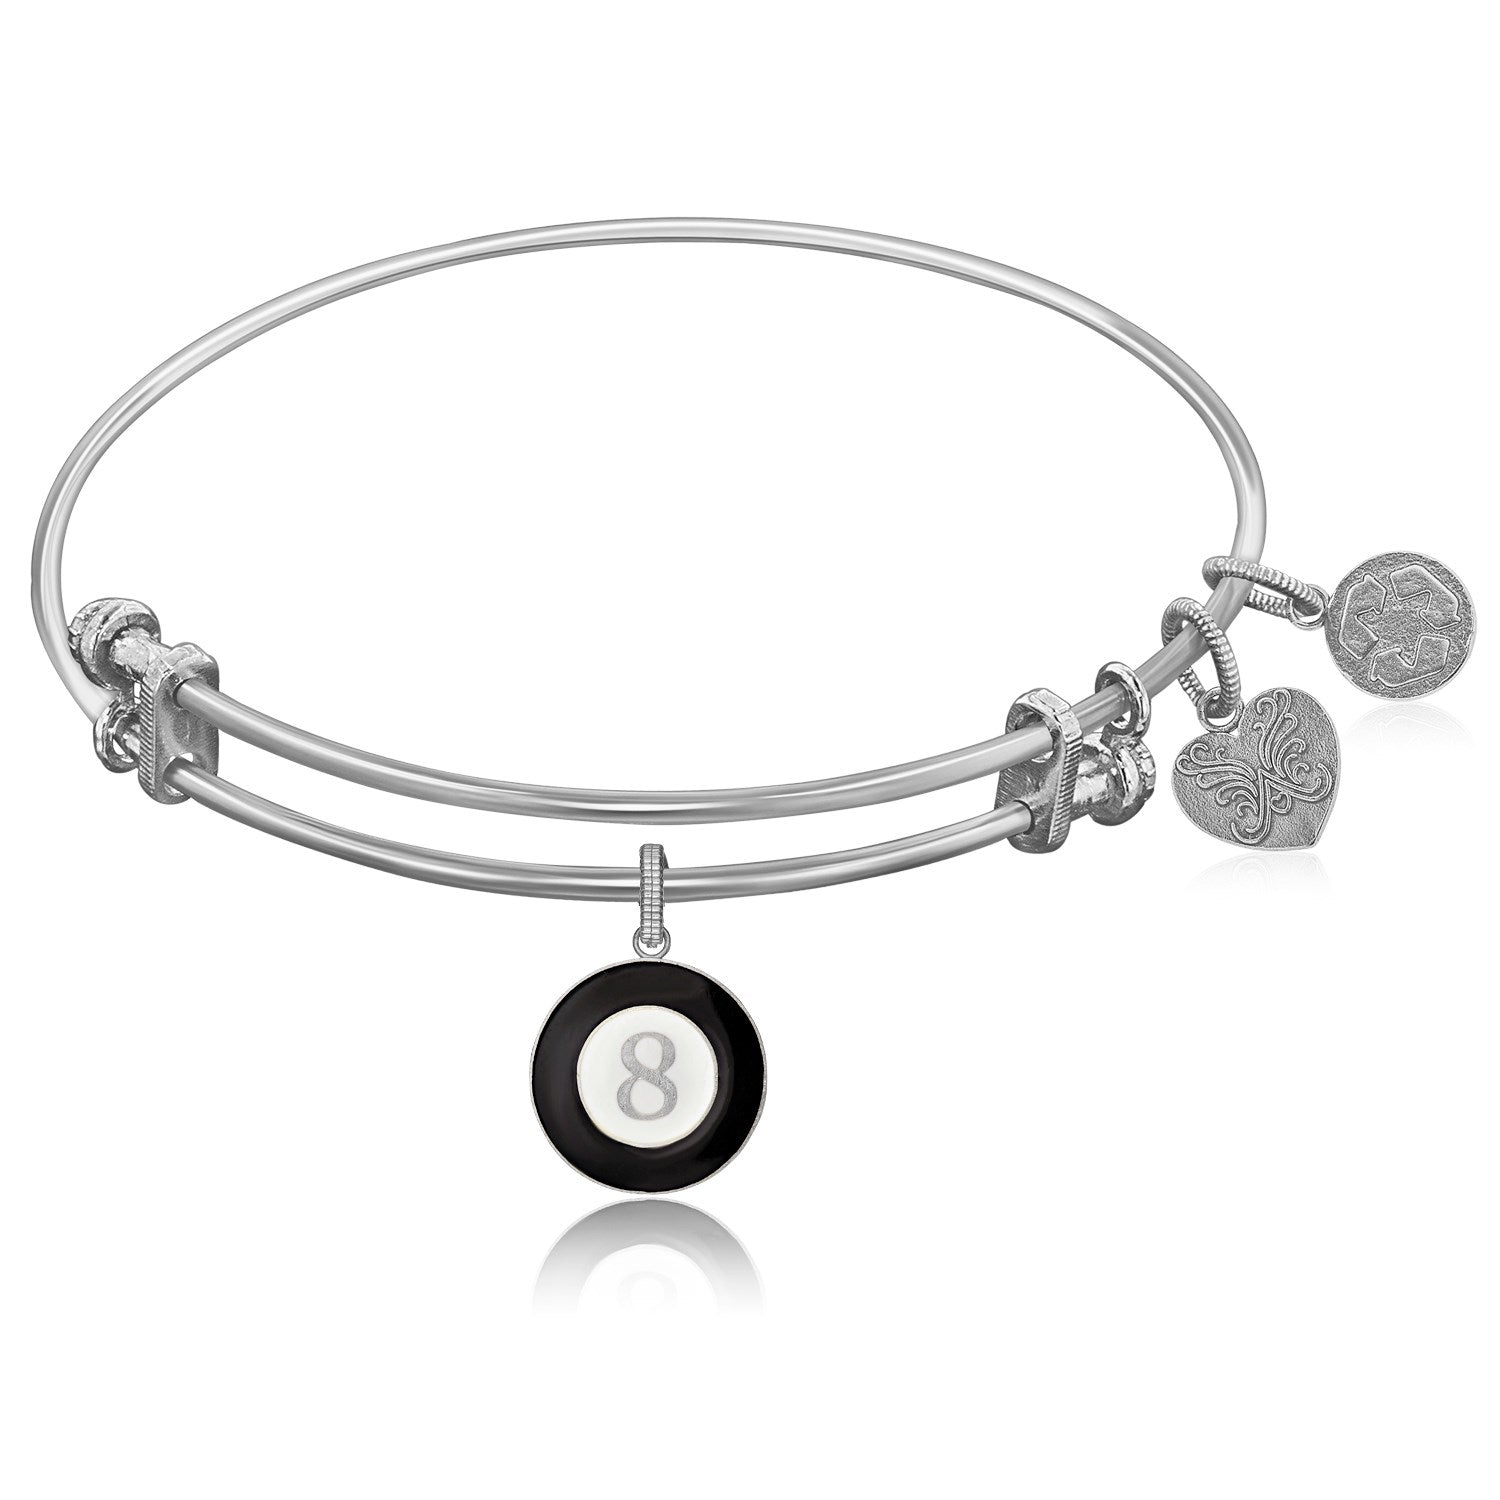 Expandable White Tone Brass Bangle with Black & White Enamel 8 Ball Symbol